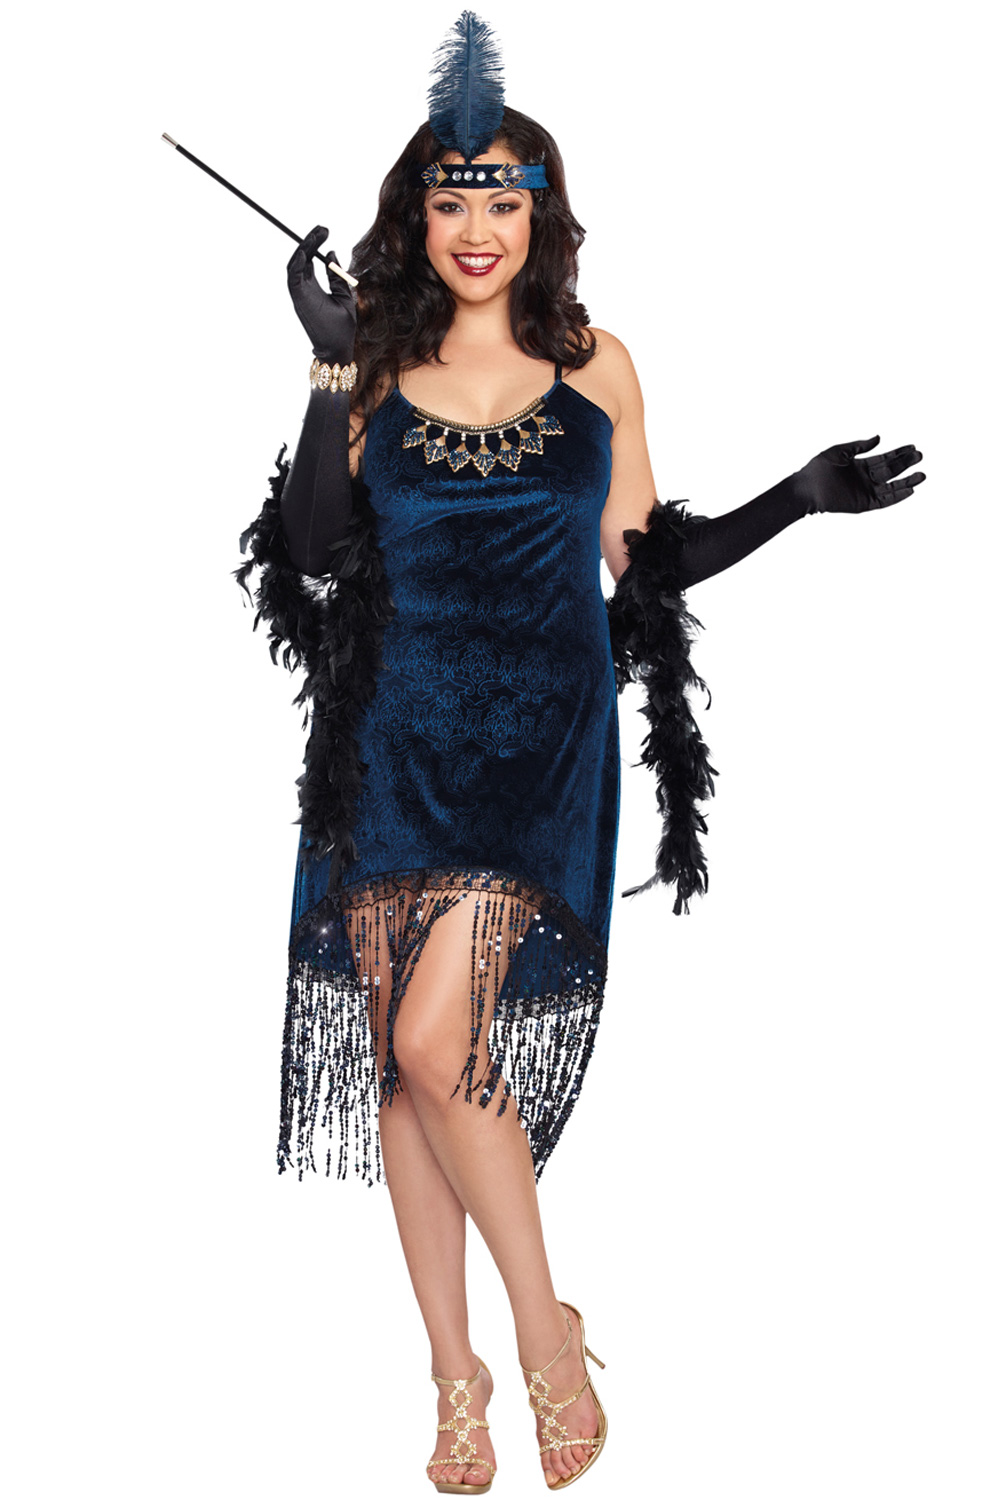 Plus Size Halloween Costumes True style knows no size, especially when it comes to Halloween. Halloween is the one night of the year that everybody can let loose and be who they want to be, from a pirate to a princess, or an astronaut to an angel.